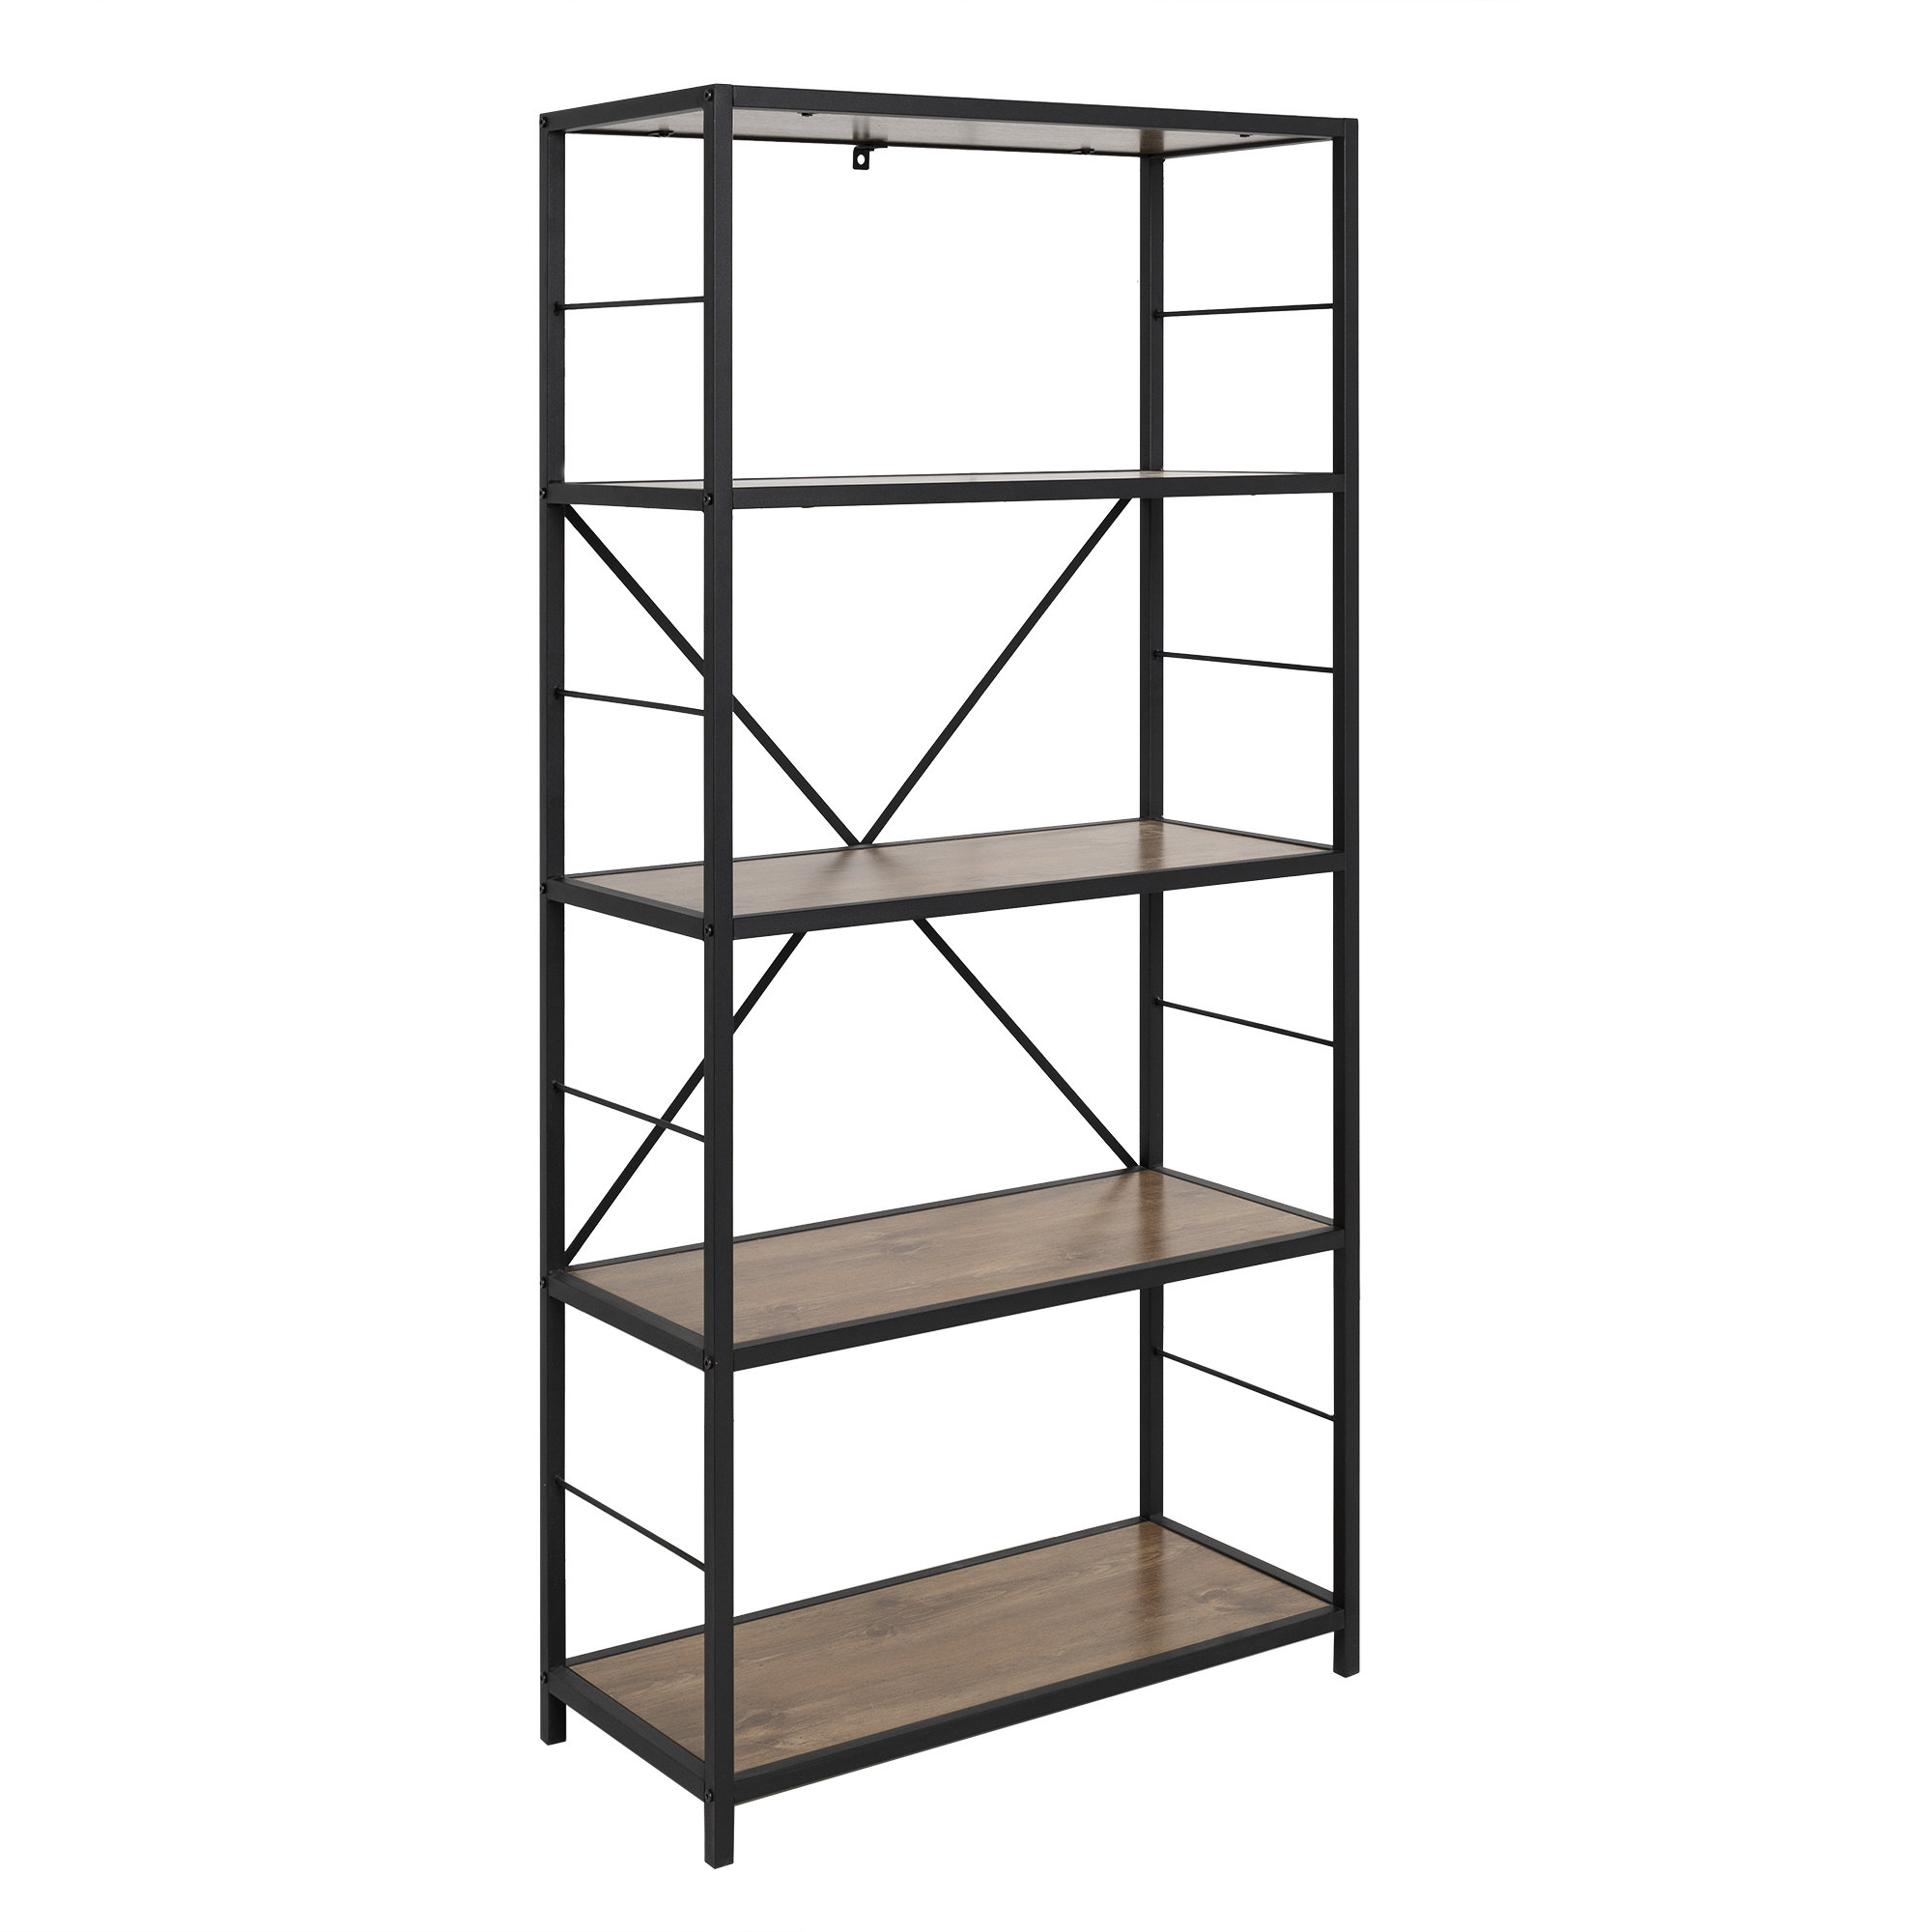 Macon Etagere Bookcase Pertaining To 2019 Rossman Etagere Bookcases (View 7 of 20)